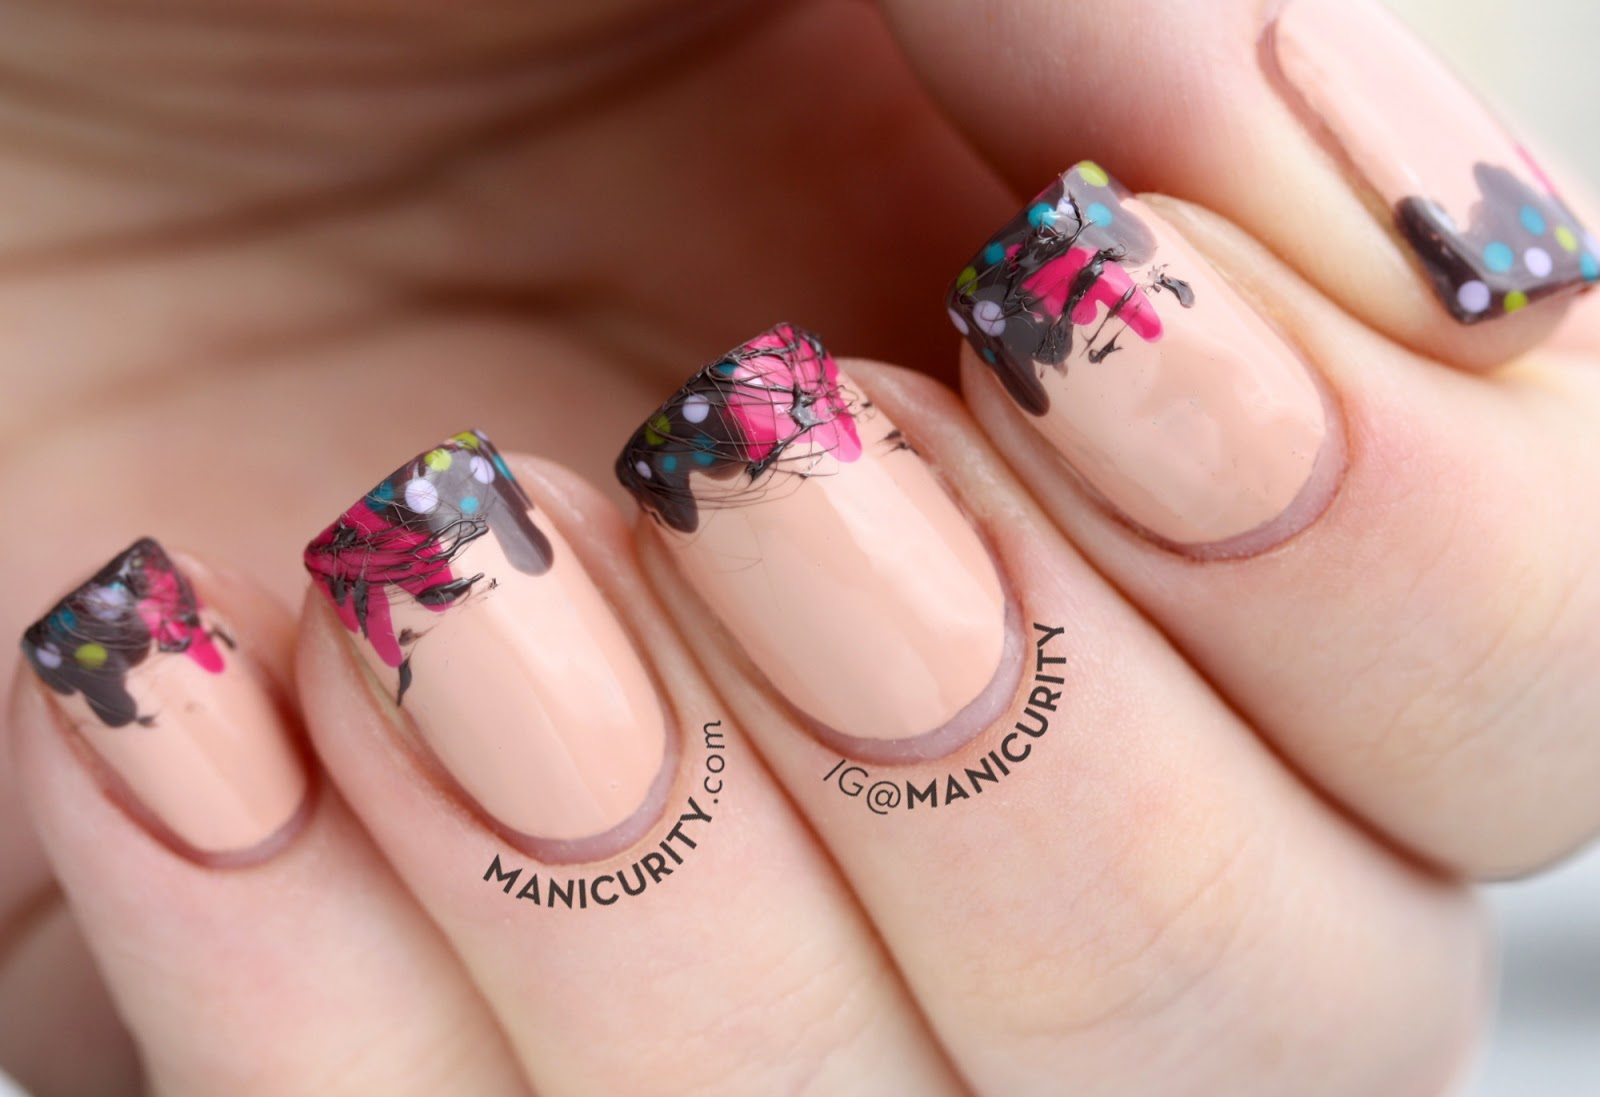 Manicurity | super cute Drippy Ice Cream Nails - with some Sugar-Spun Fudge!